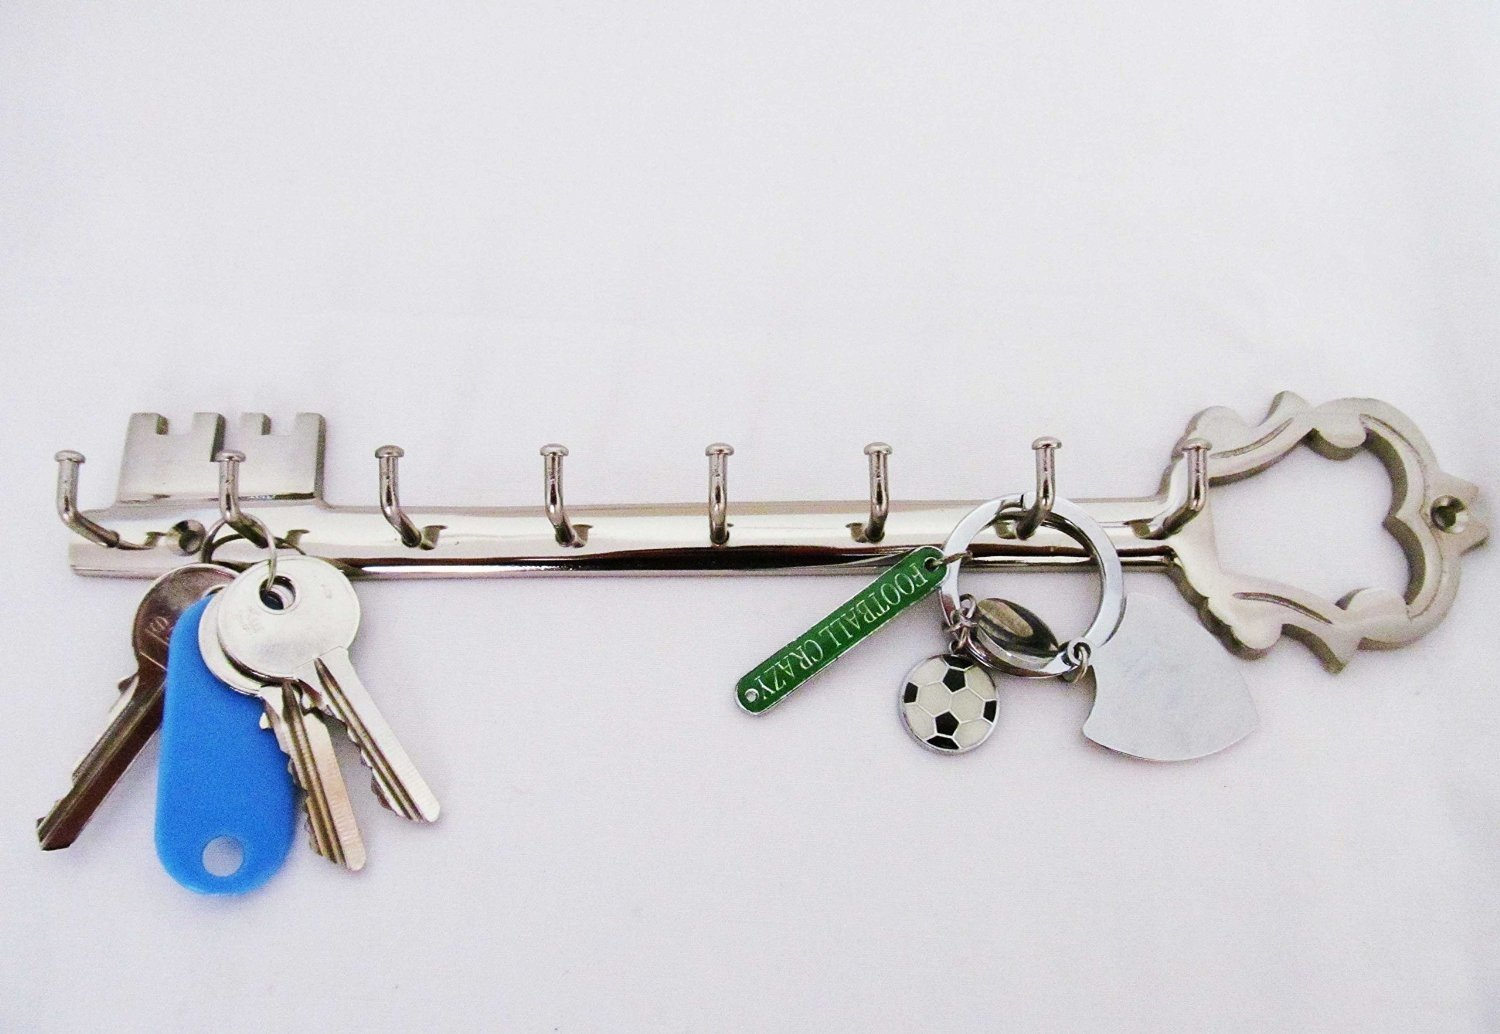 KEY SHAPE Chrome Finish Brass Metal Key Hook Hanger Holder Rack Decor IvoryBlu777